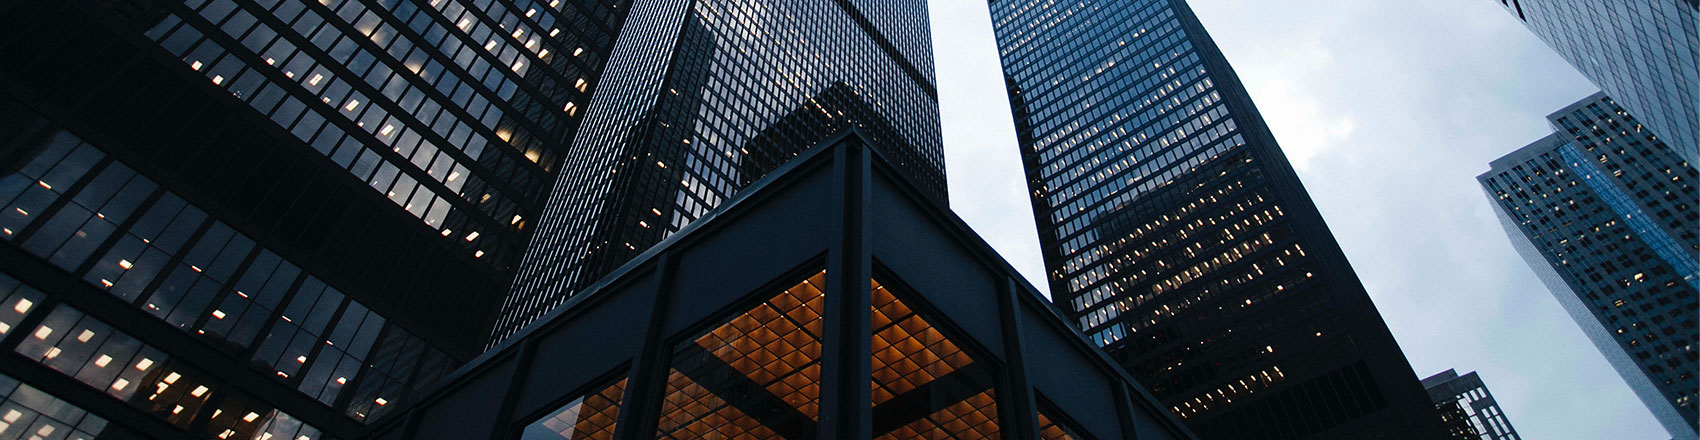 Layers of dark, glass skyscrapers against a cloudy sky.